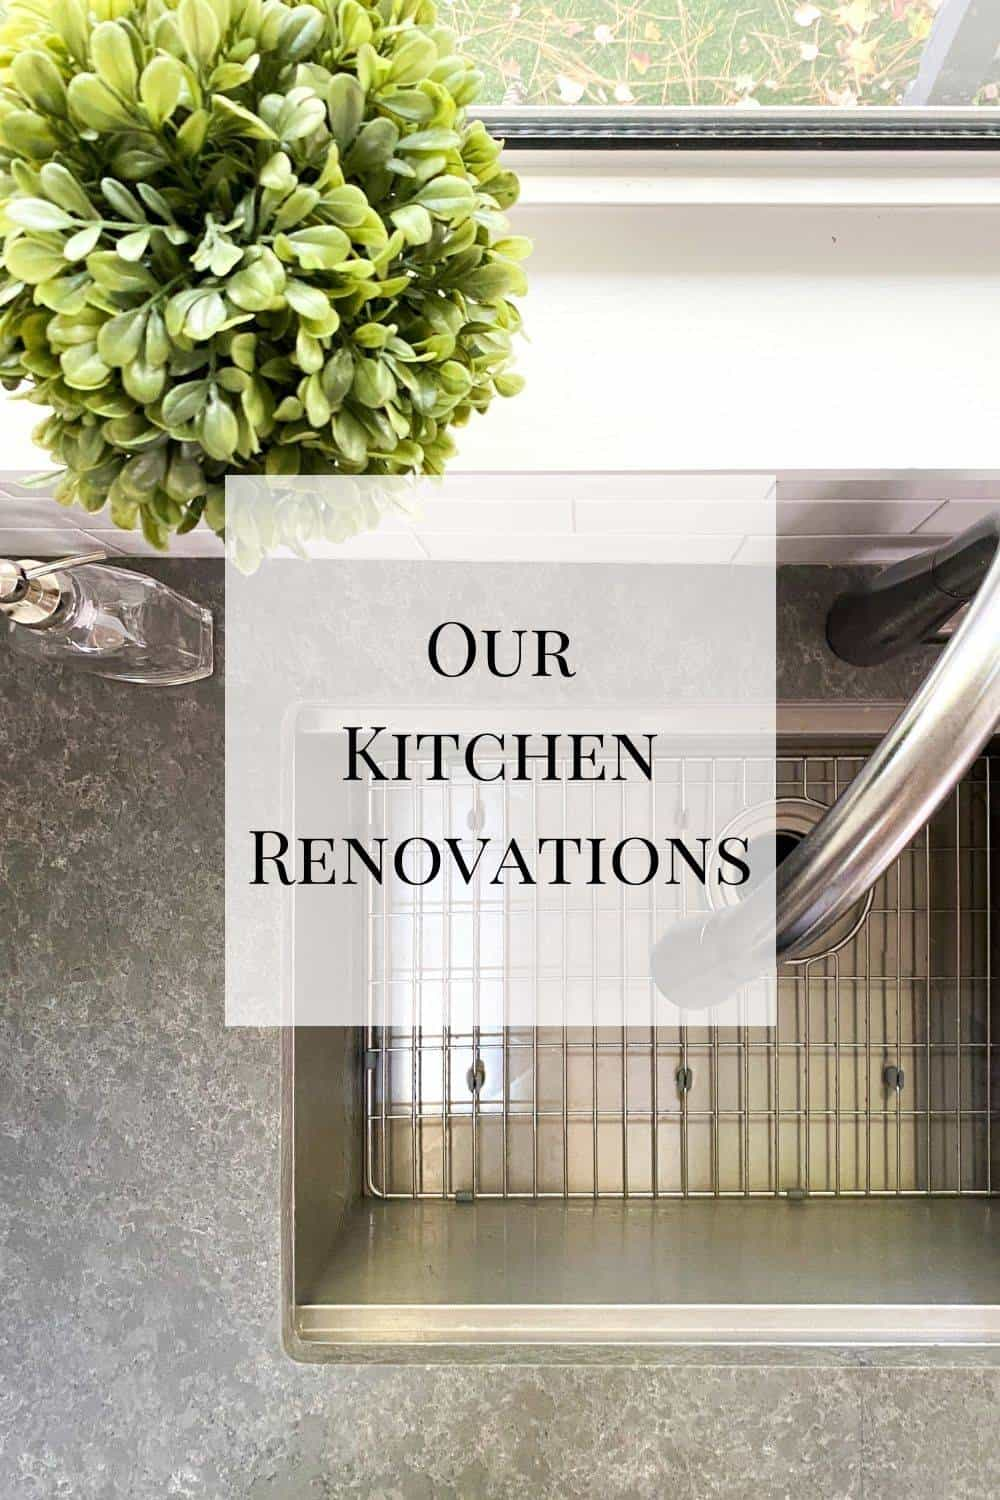 A look at the before and after of our kitchen renovations - all the new things and the great company we worked with!